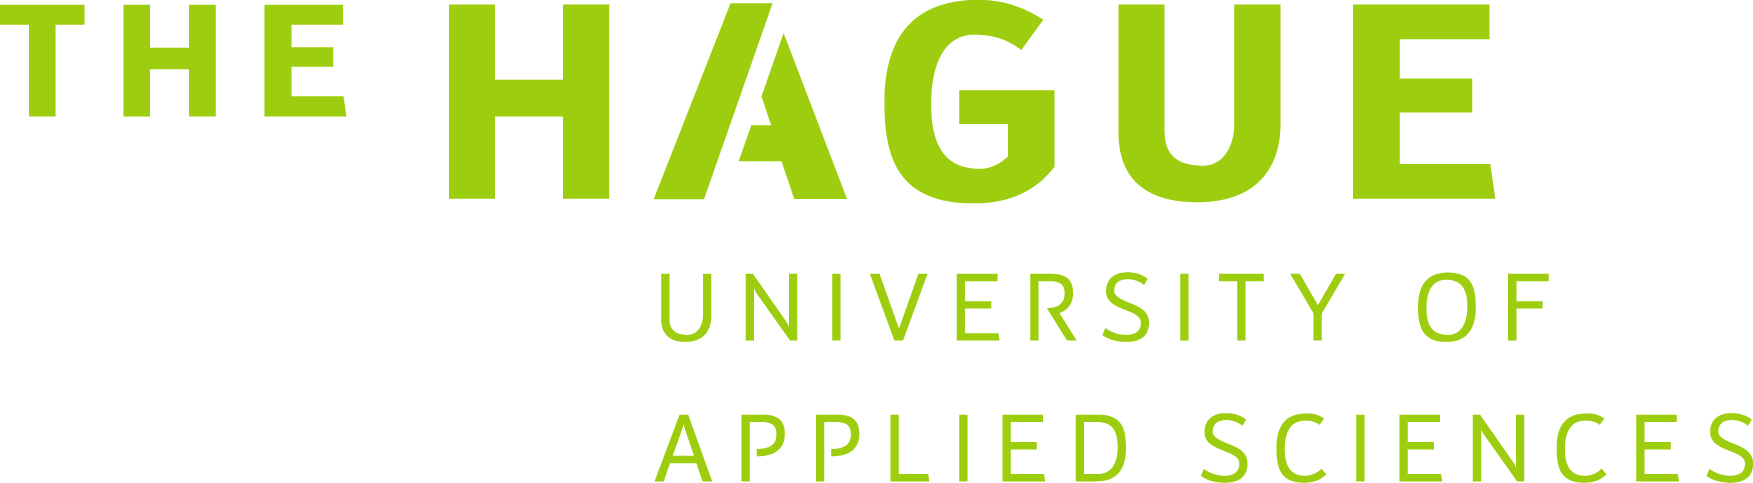 The Hague University of Applied Sciences (THUAS)